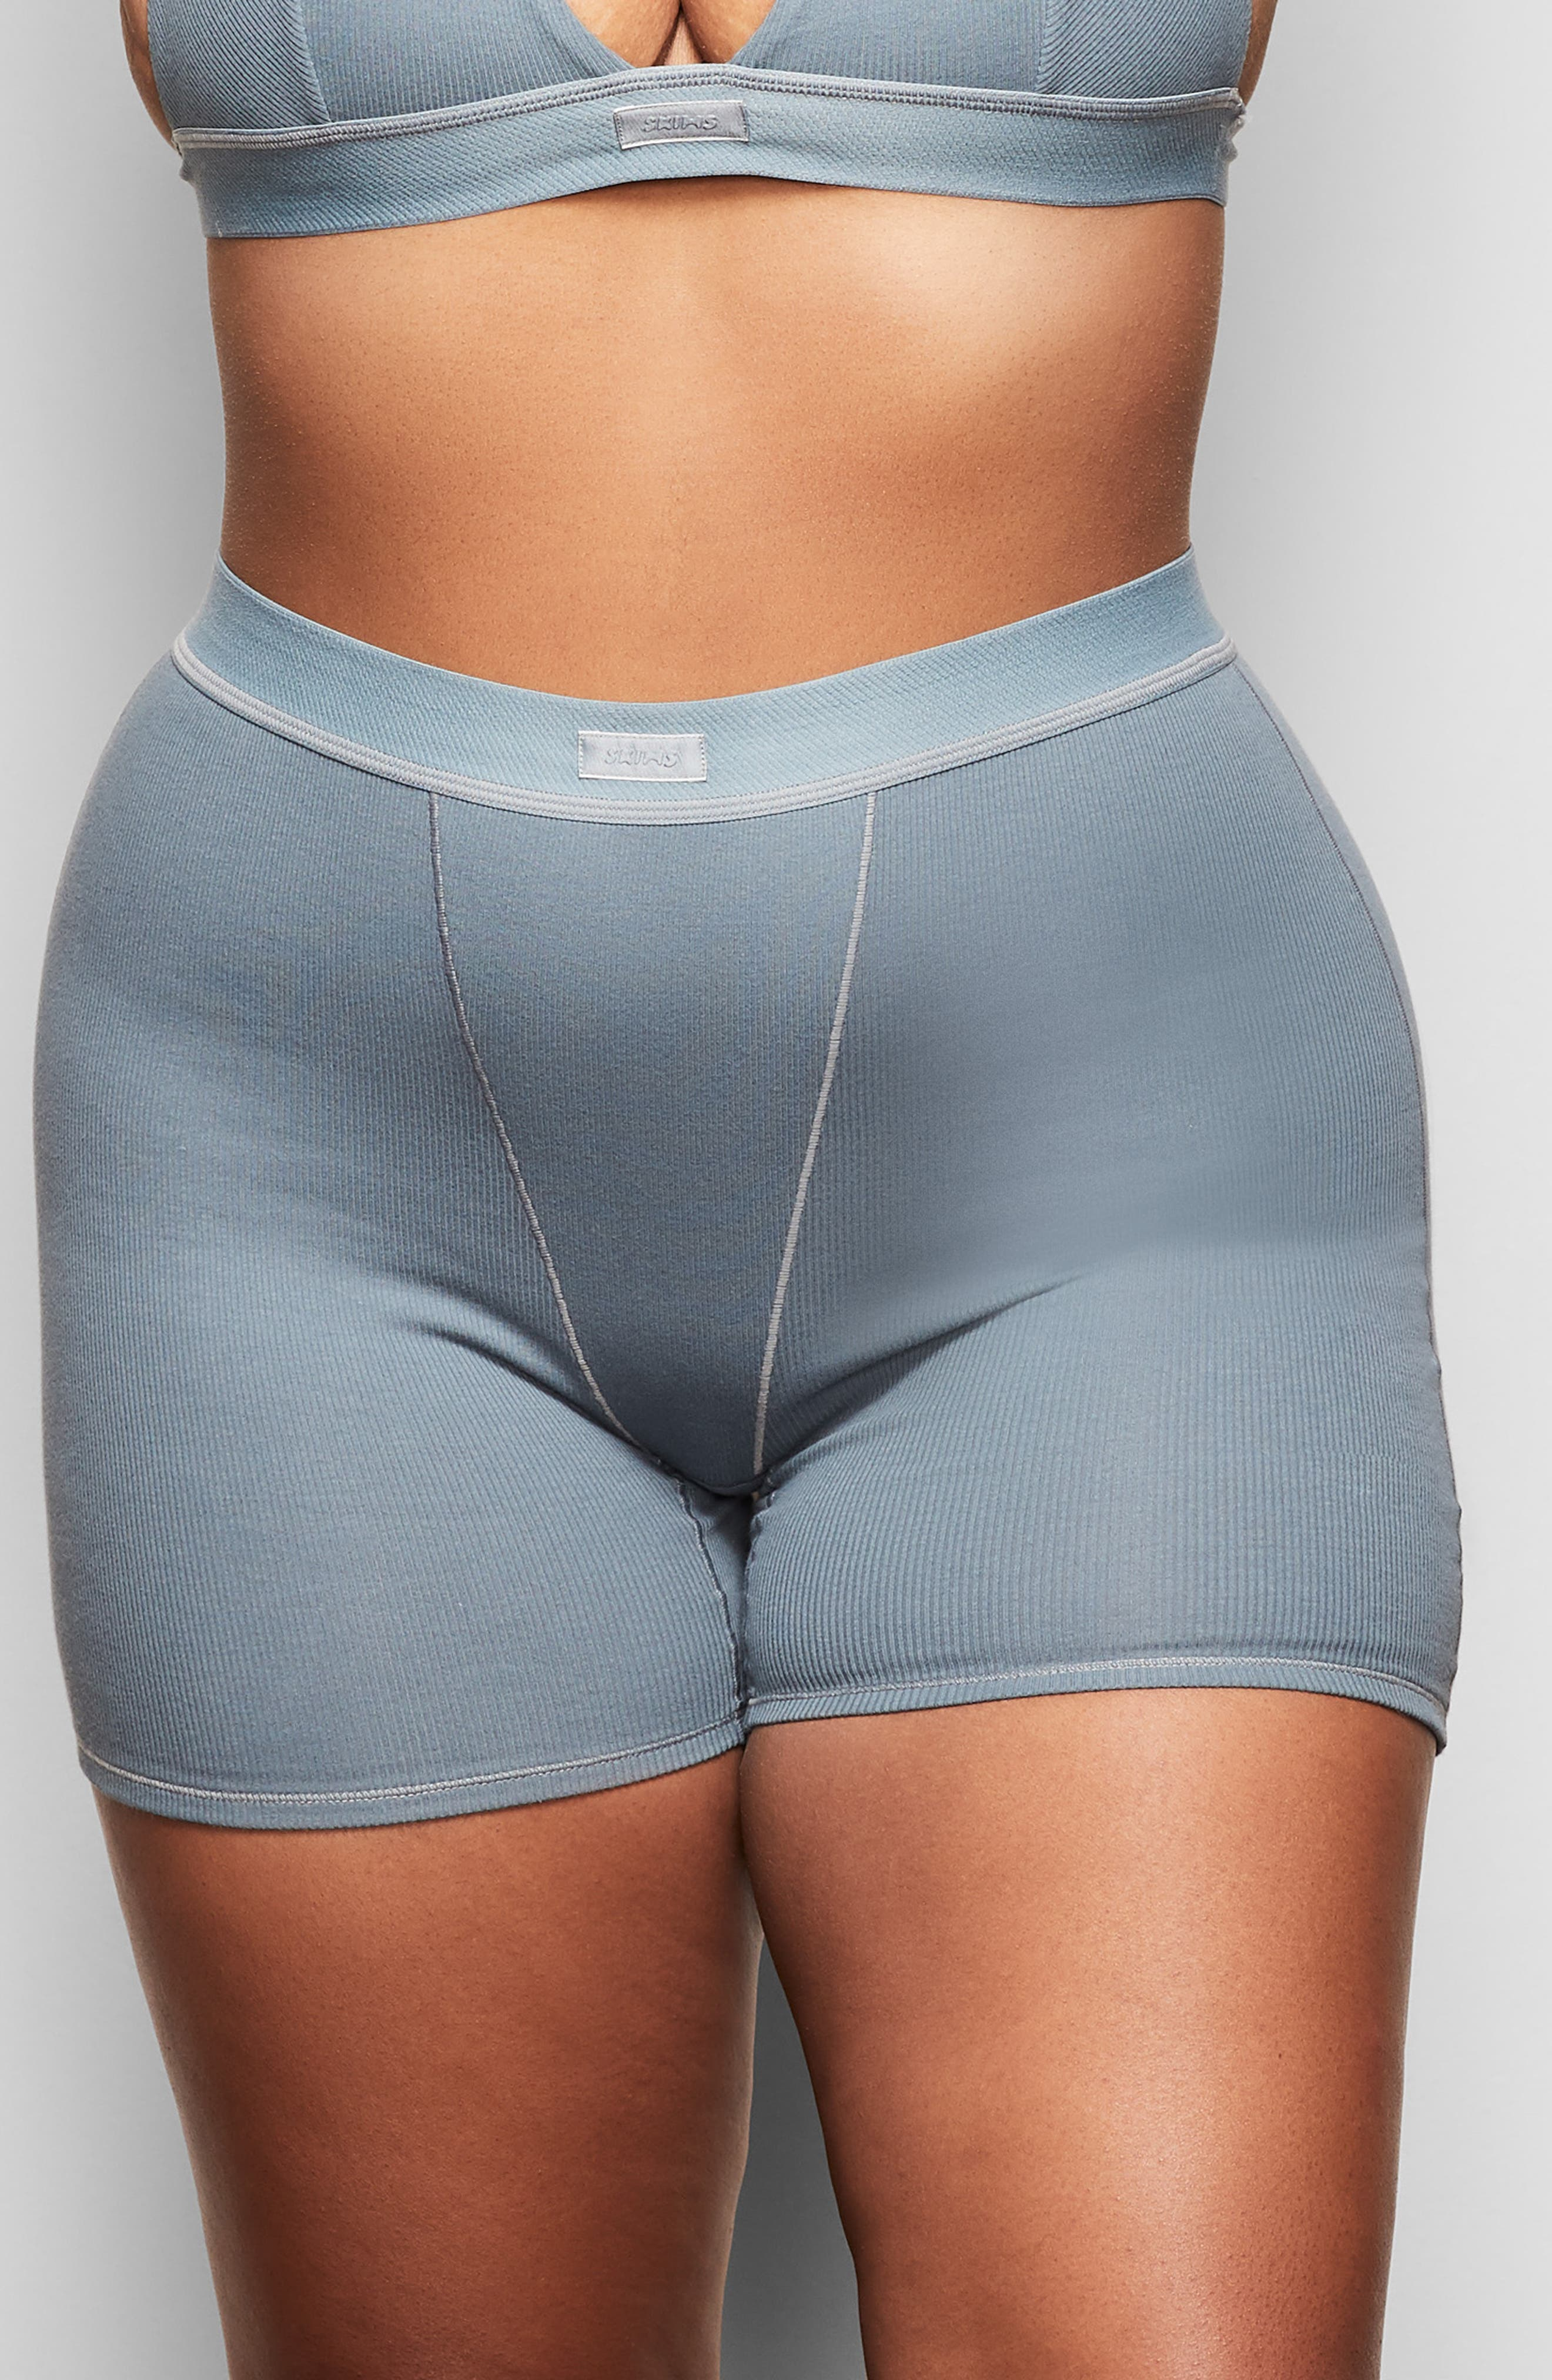 Enjoy the look of your boyfriend\\\'s boxers while retaining the breathability of stretch cotton with this option from Kim Kardashian West\\\'s SKIMS. Available in a range of five complementary colors, this comfortable style that exudes a sporty look with front-fly stitching and soft ribbing, is destined to be a part of your regular rotation. Style Name: Skims Cotton Rib Boxers (Regular & Plus Size). Style Number: 6016010. Available in stores.